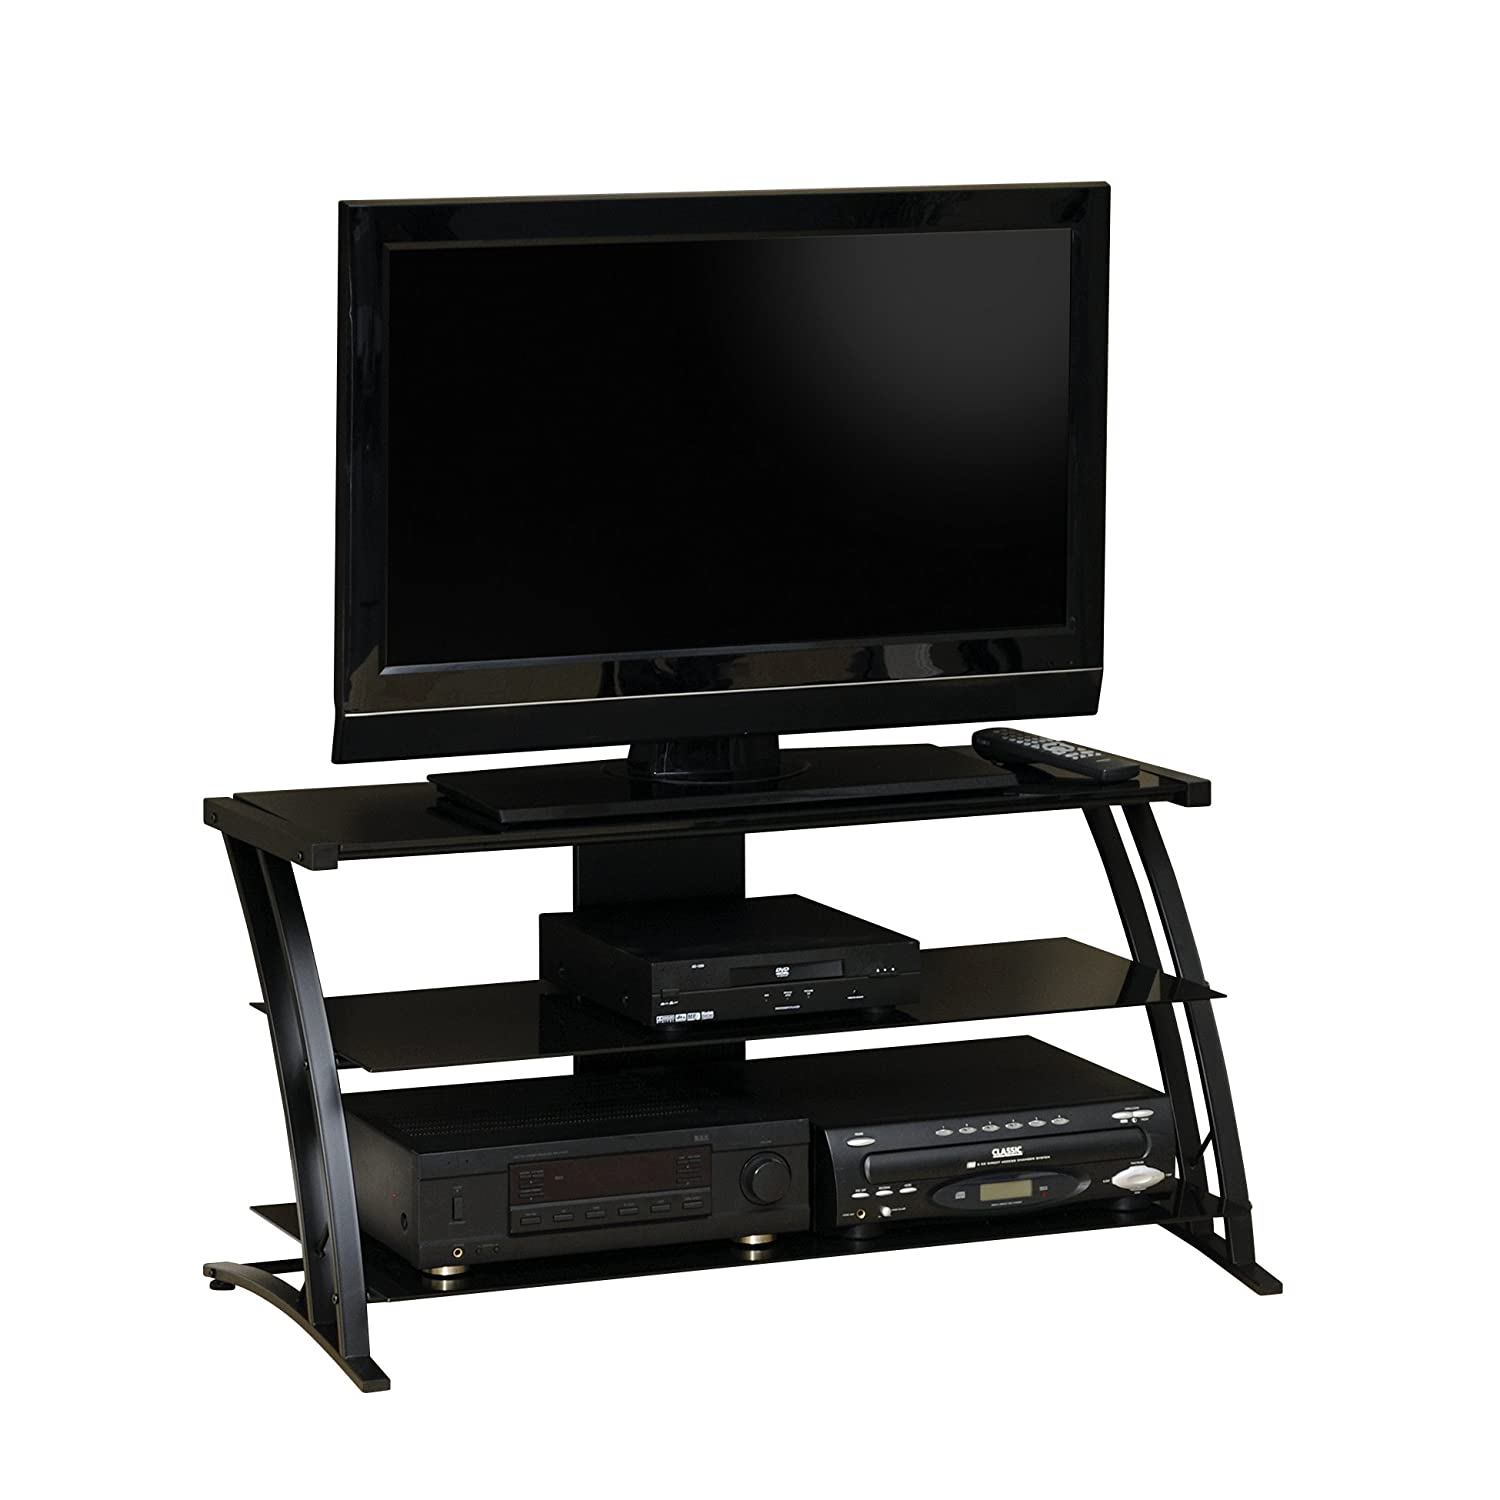 Sauder Deco Panel TV Stand, Black $79.00